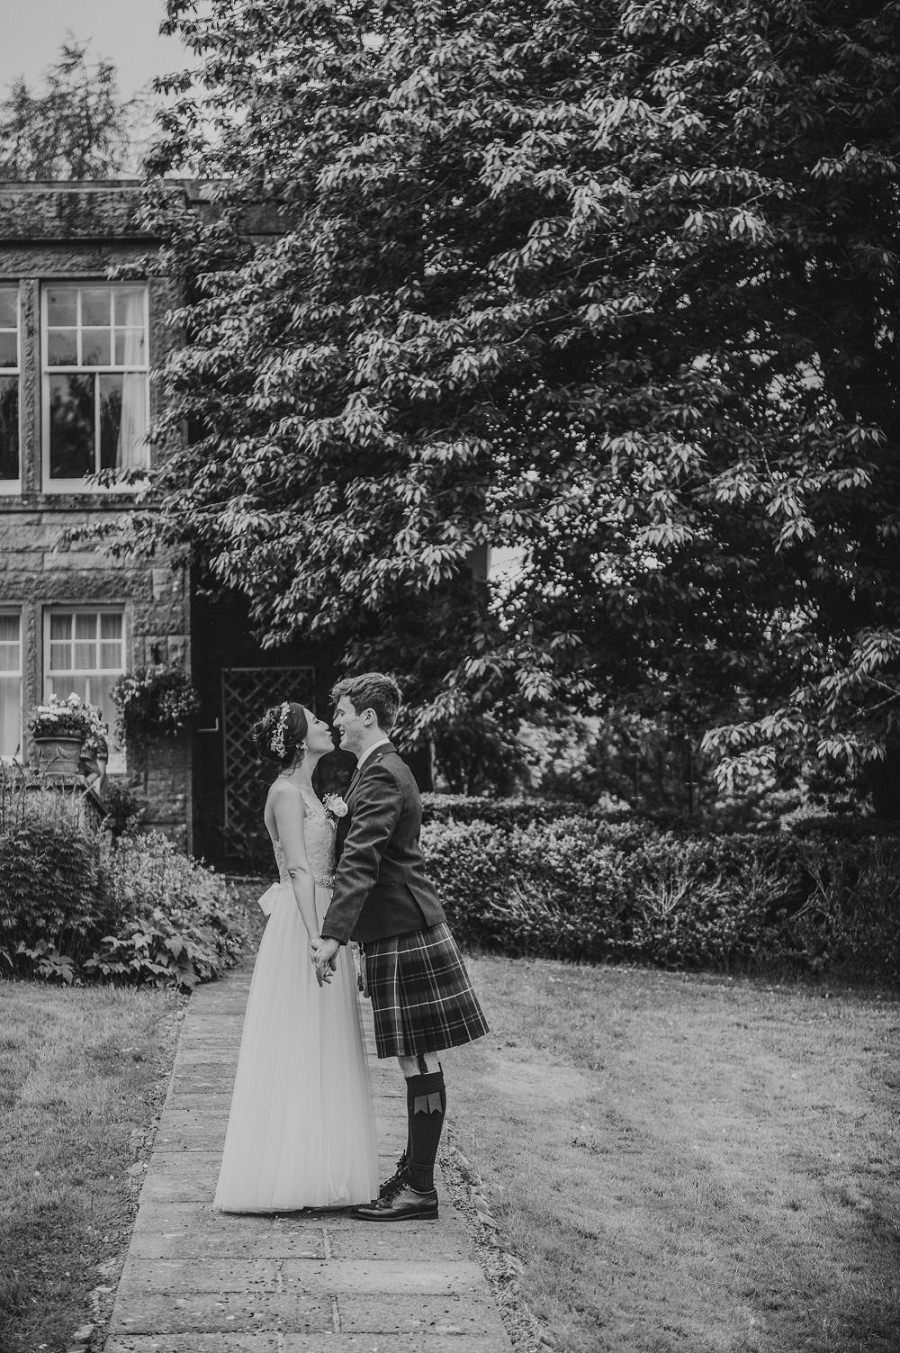 scottish-wedding-photography-vintage-photographer-034.jpg